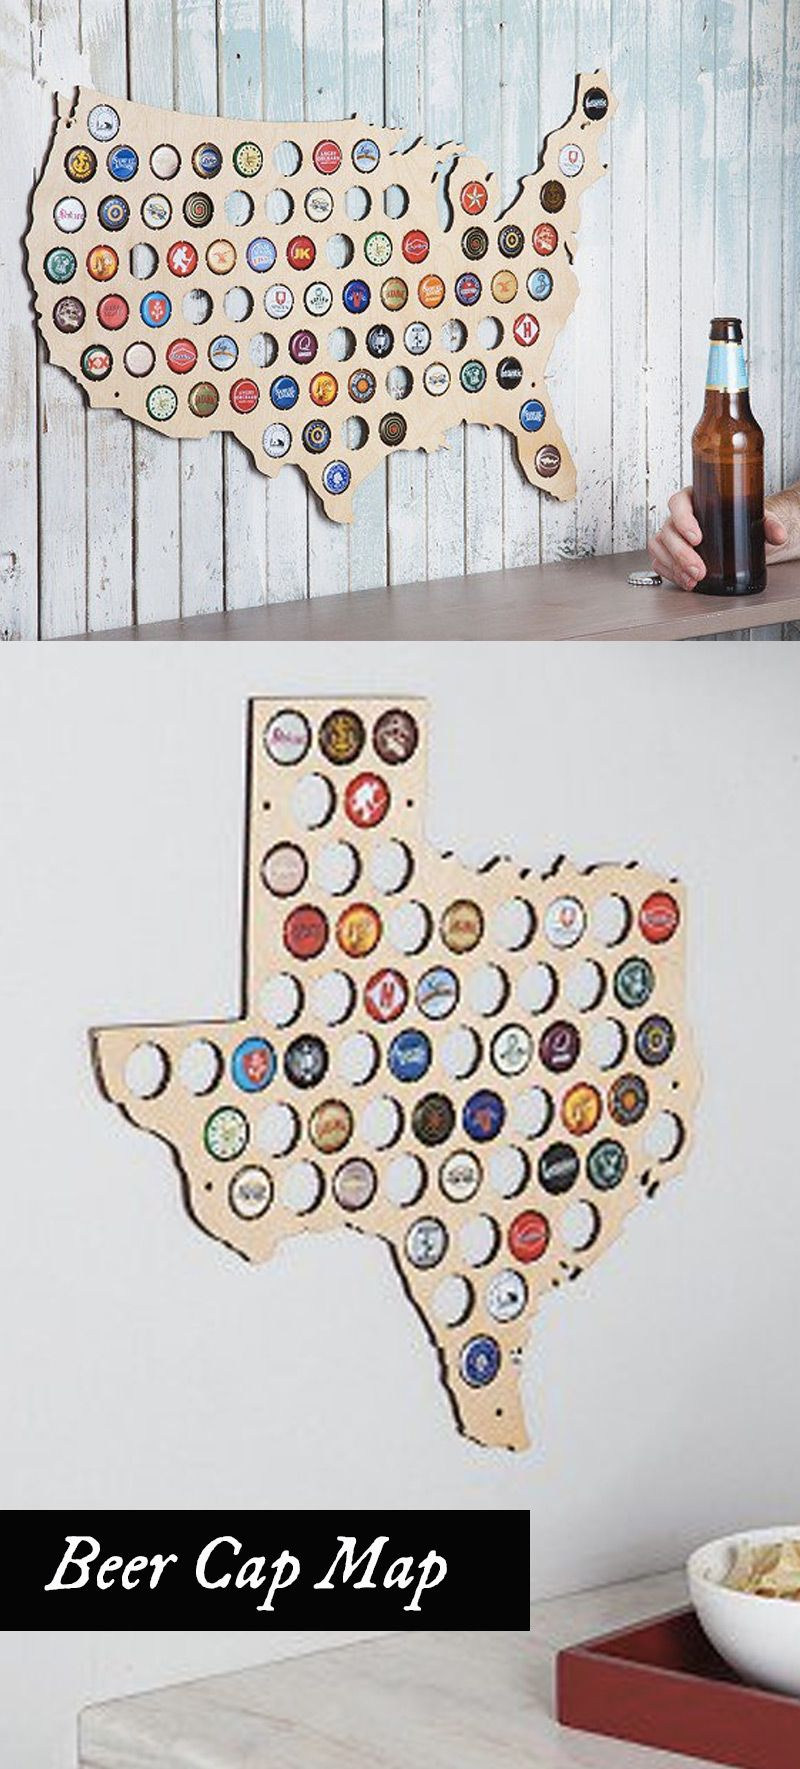 Beer Cap Trap Creates Laser Cut Wooden Wall Maps Made To Display The Caps Of